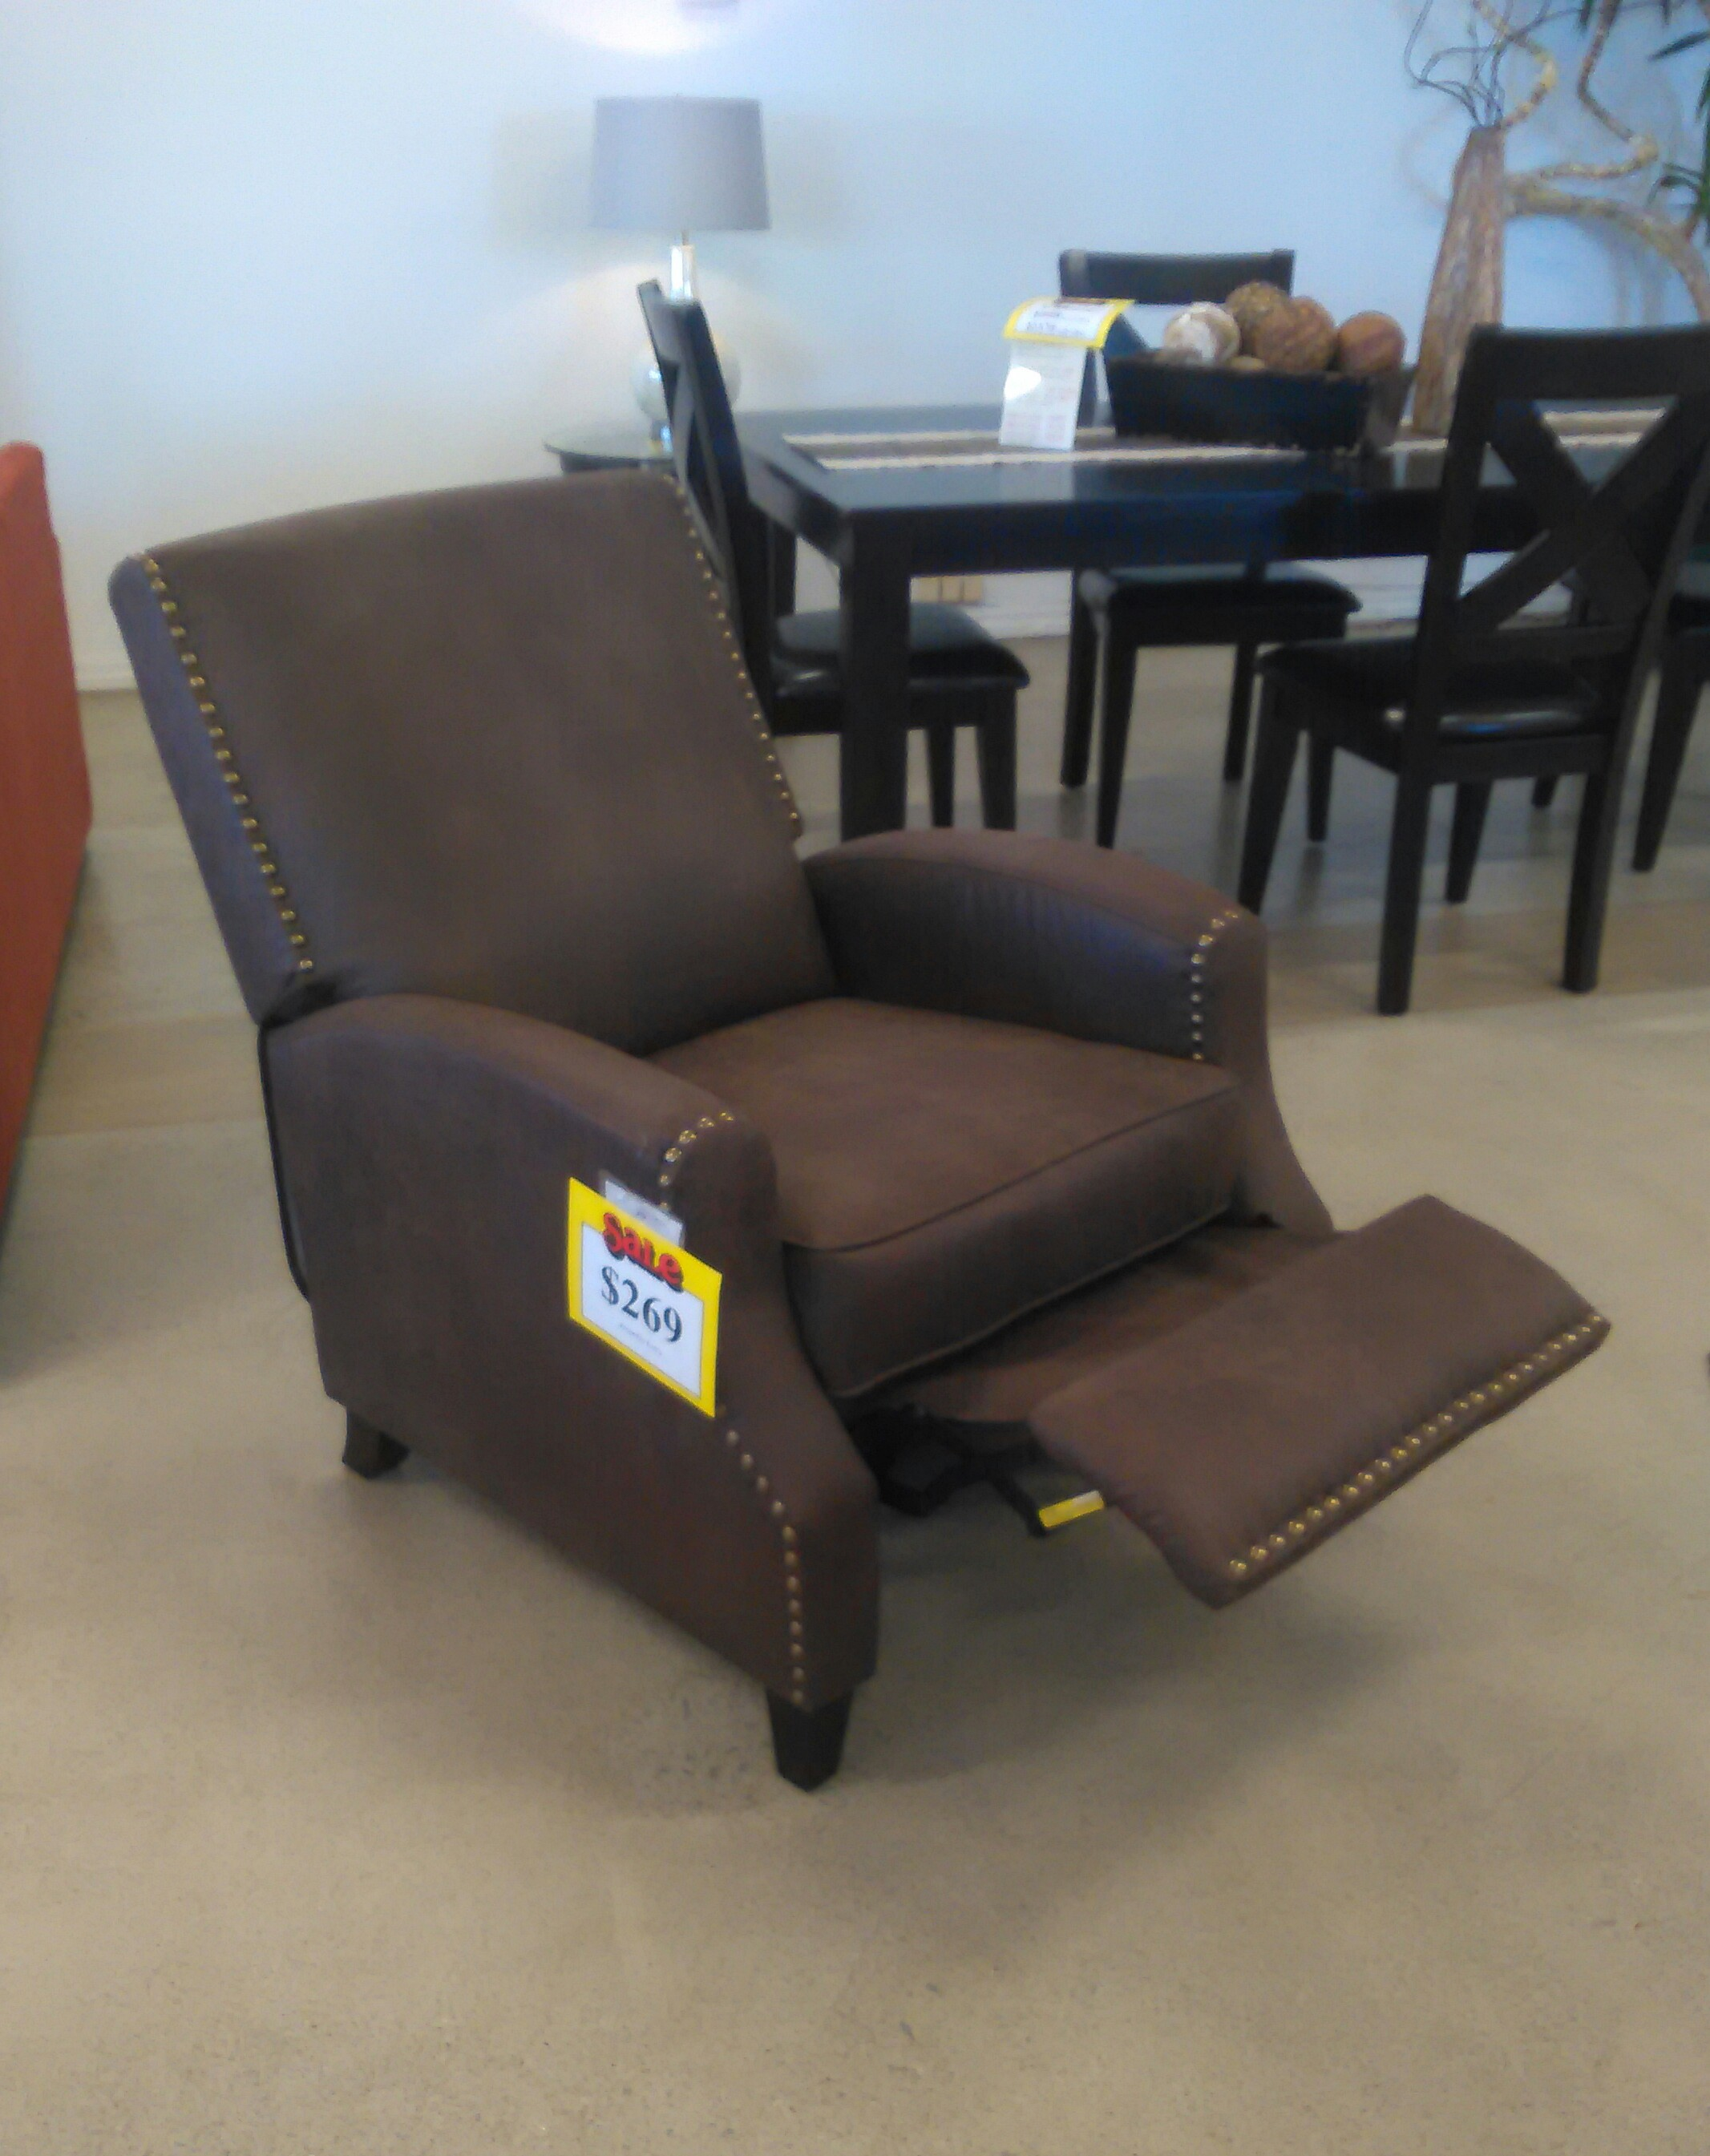 Furniture Today Concord – Quality Furniture at Discount